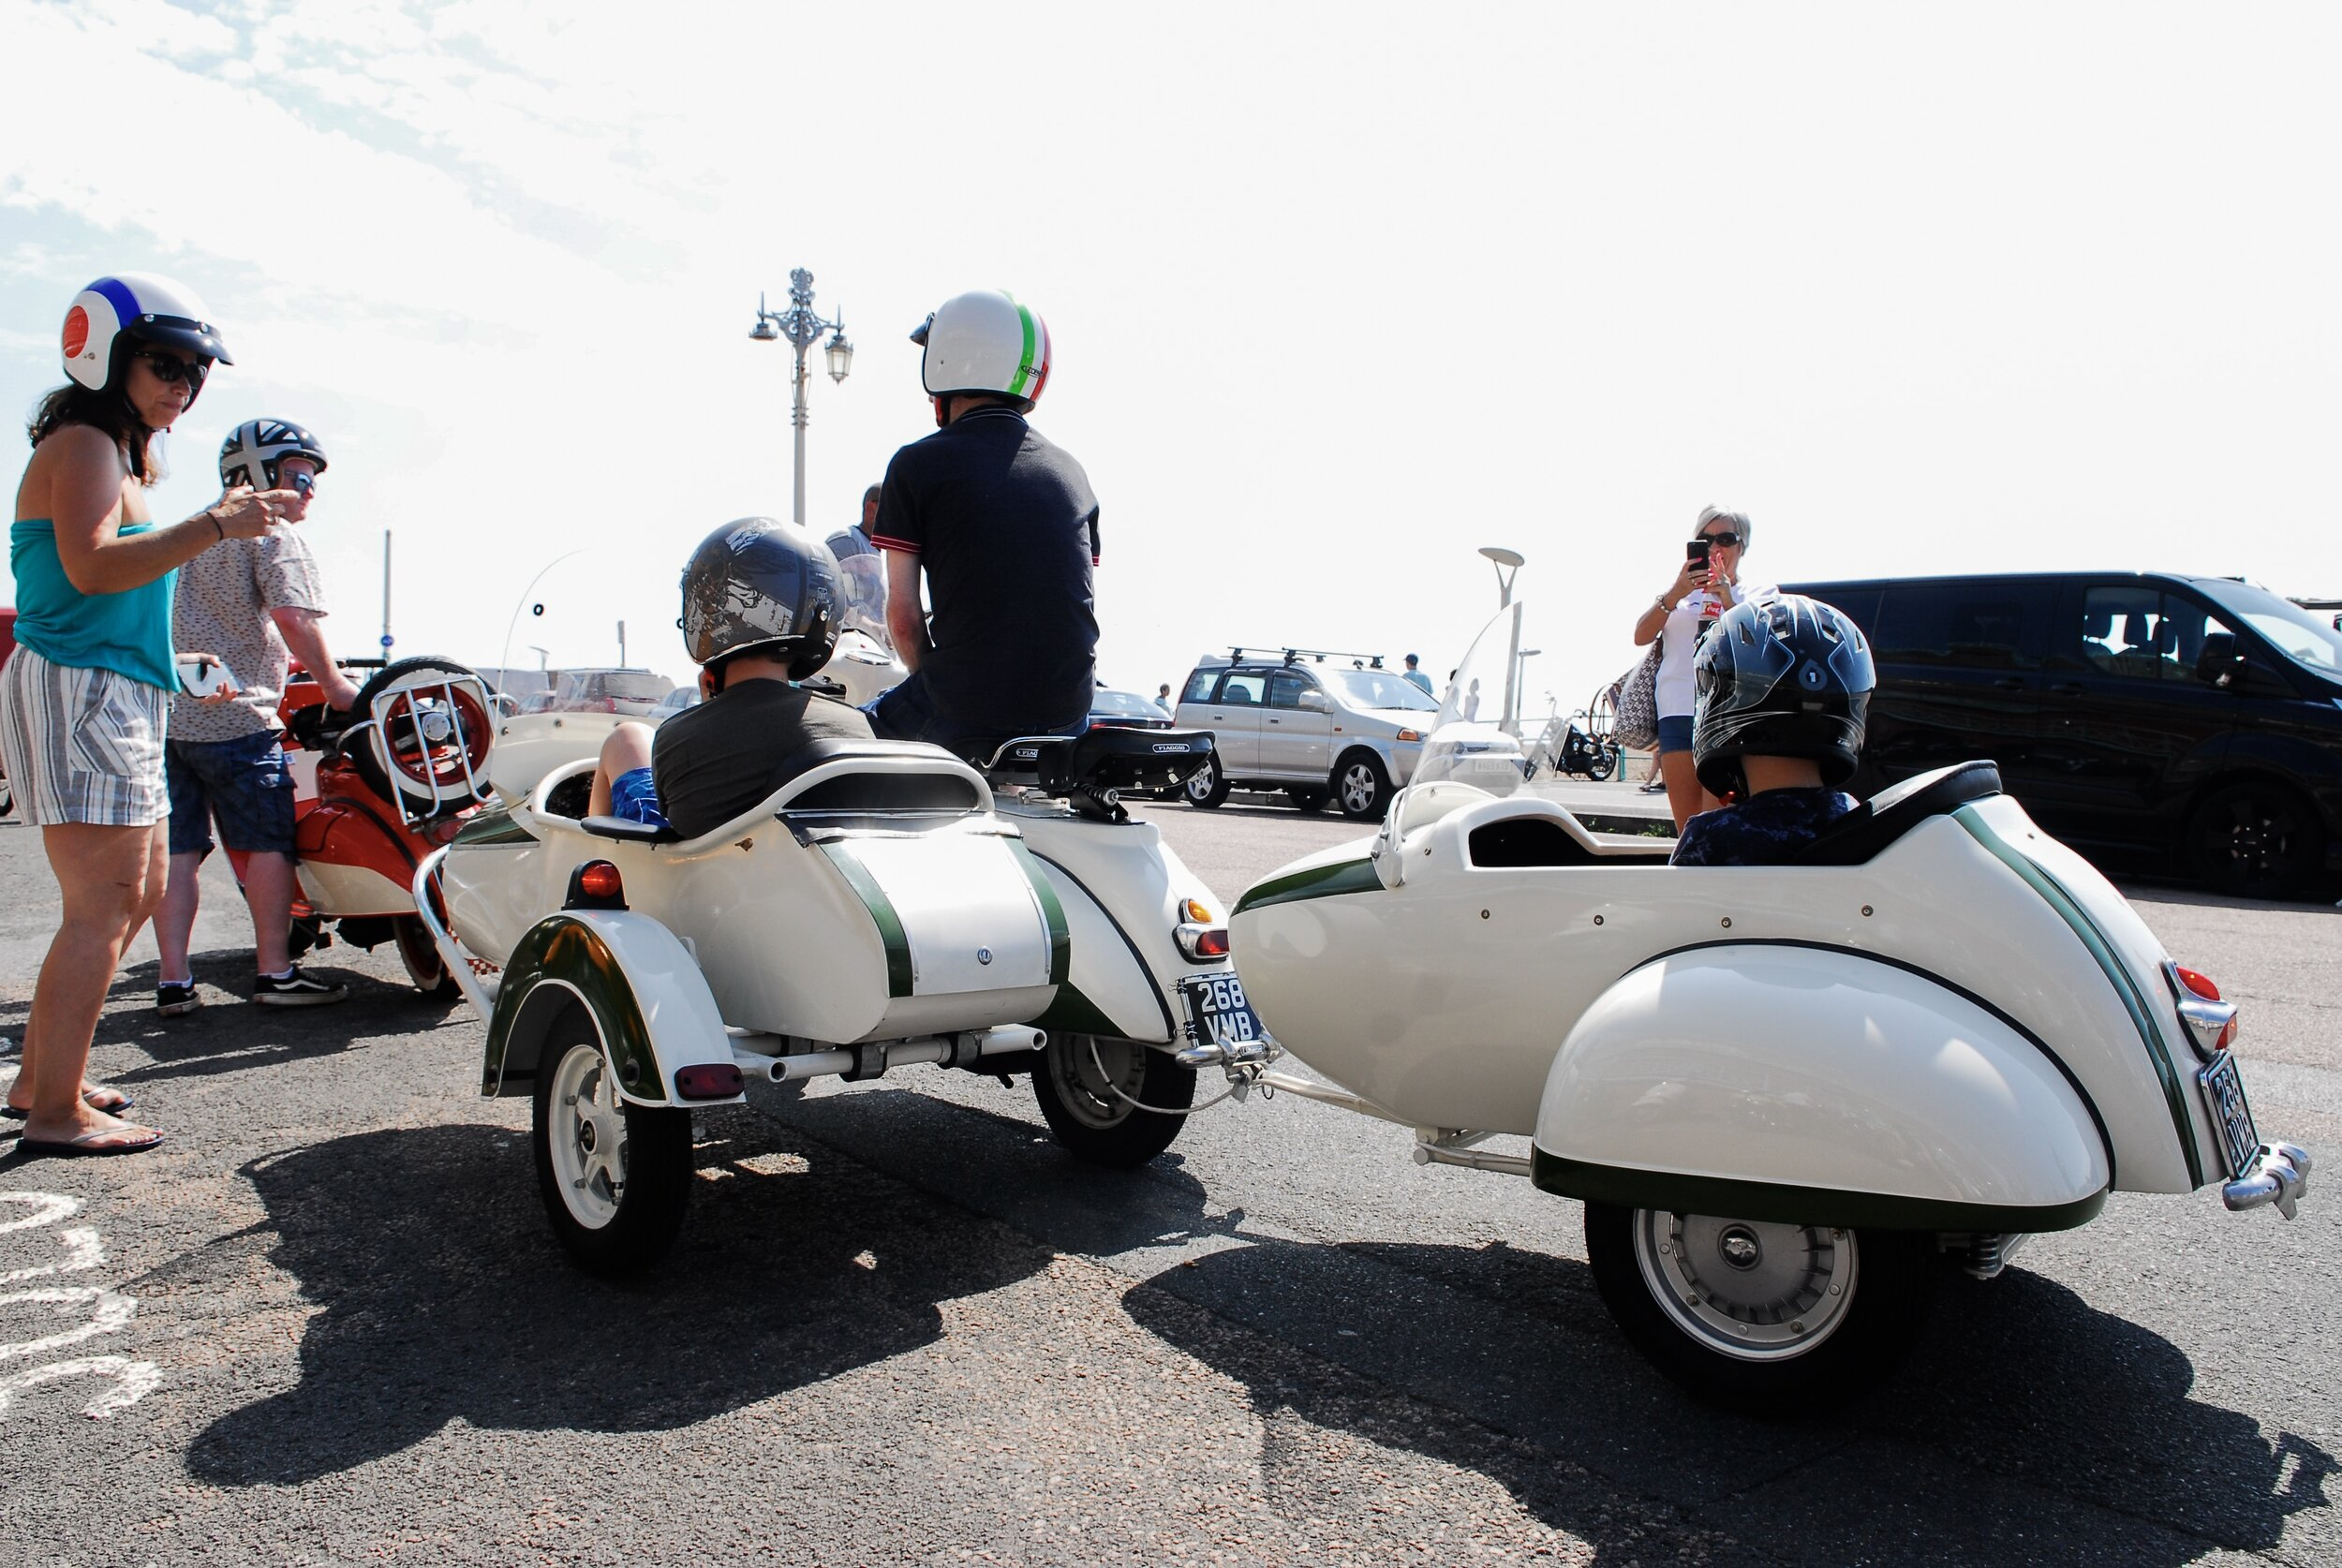 Why have just a sidecar - giving new meaning to the 'family car'…!!